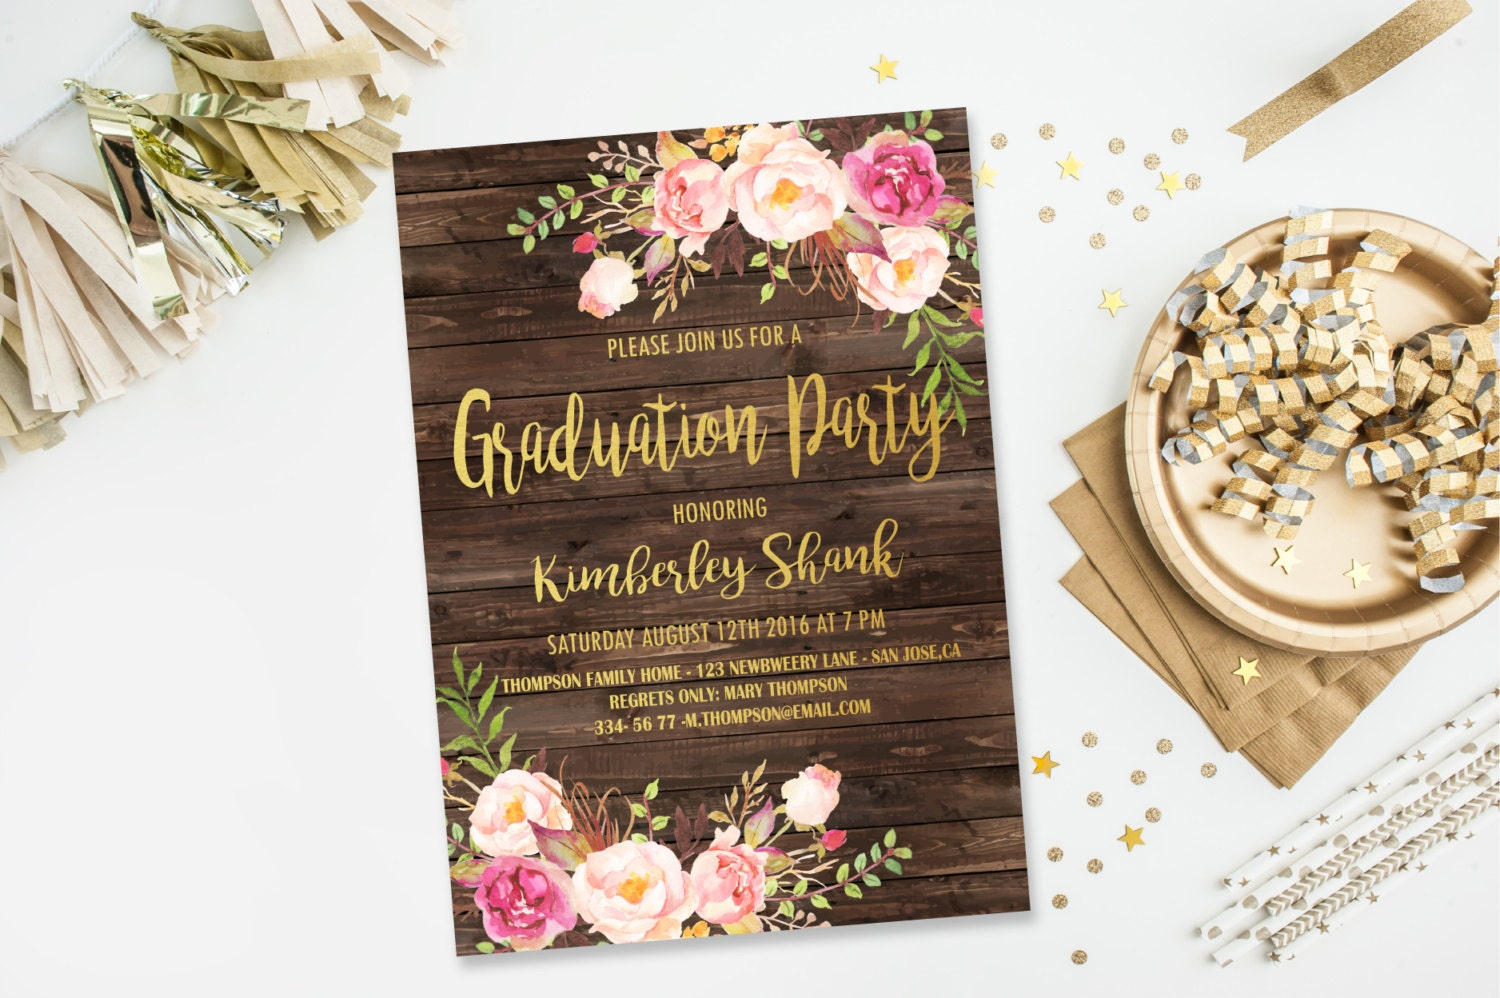 greetings island graduation party invitations - Picture Ideas References